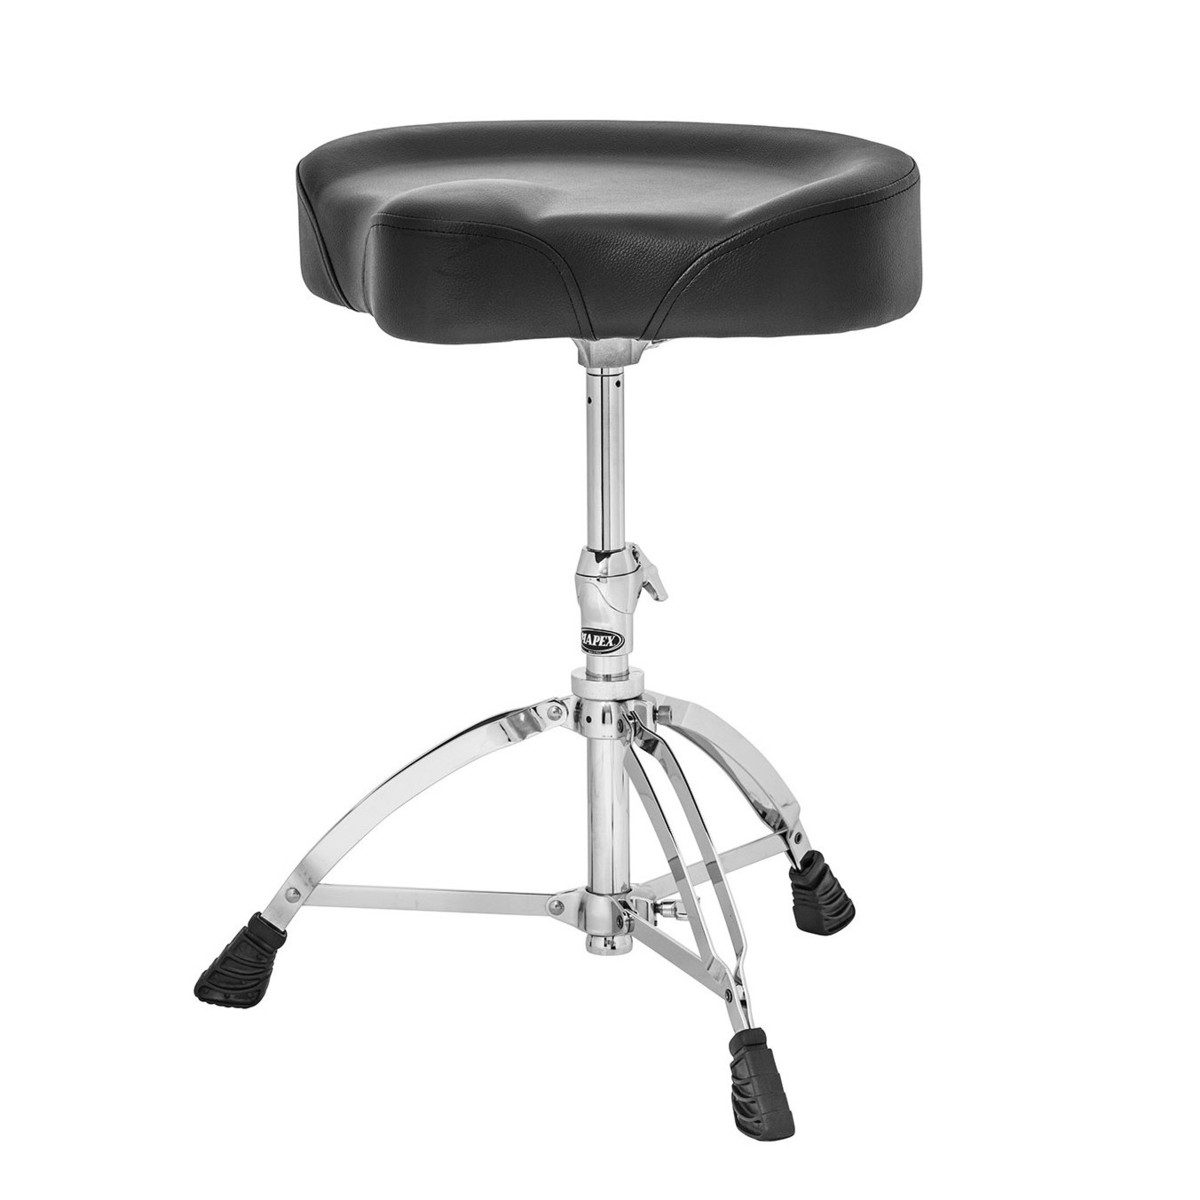 Image of Mapex T575A Double Braced Saddle Throne